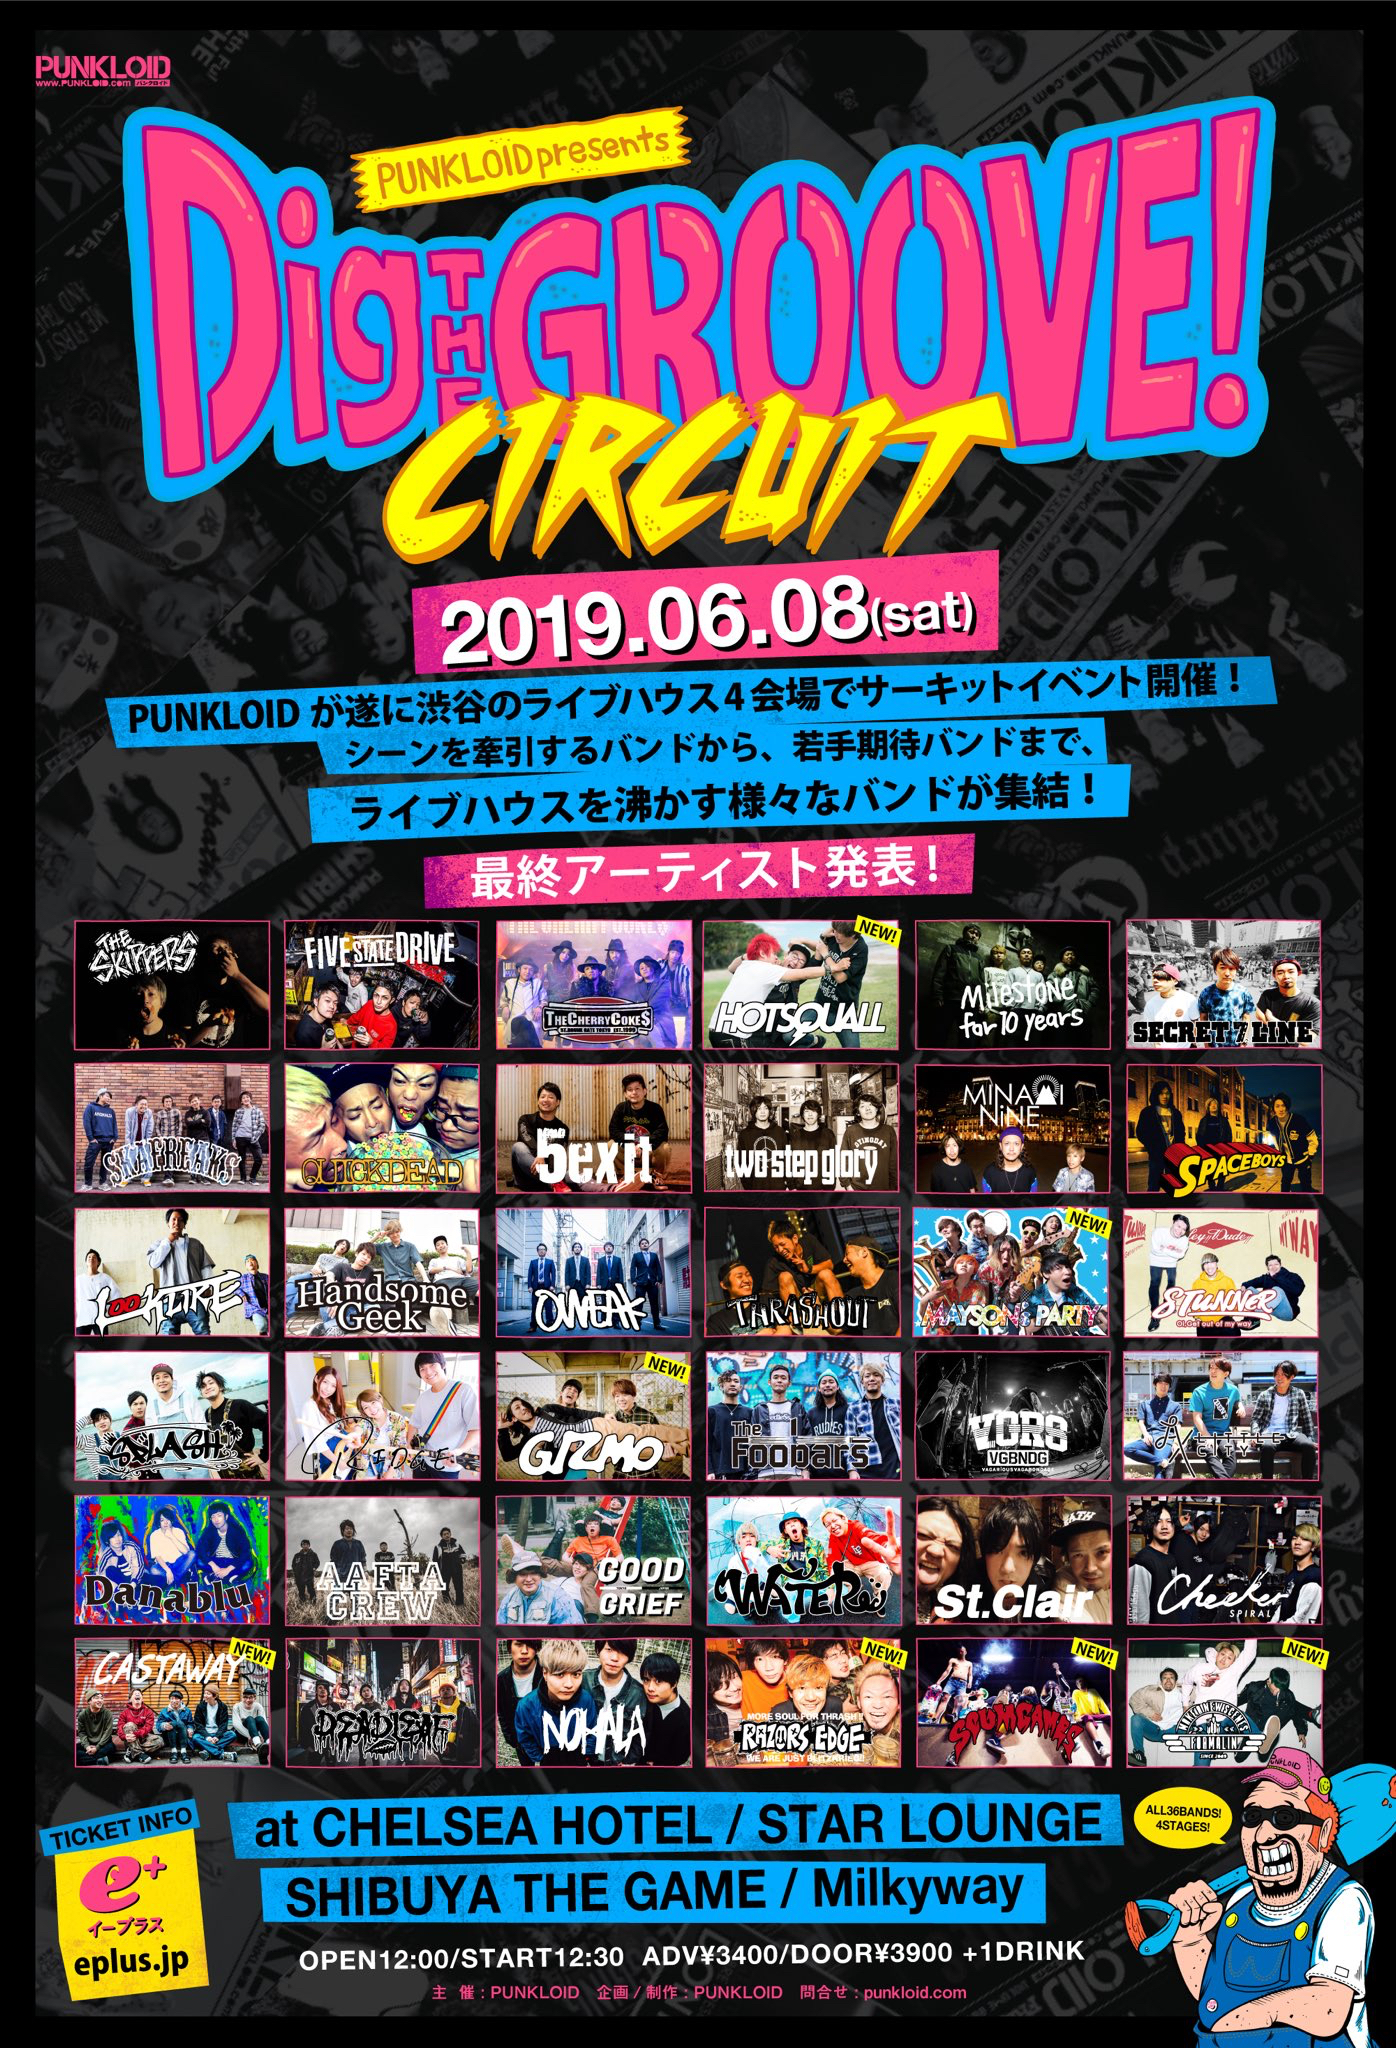 Dig THE GROOVE! CIRCUIT